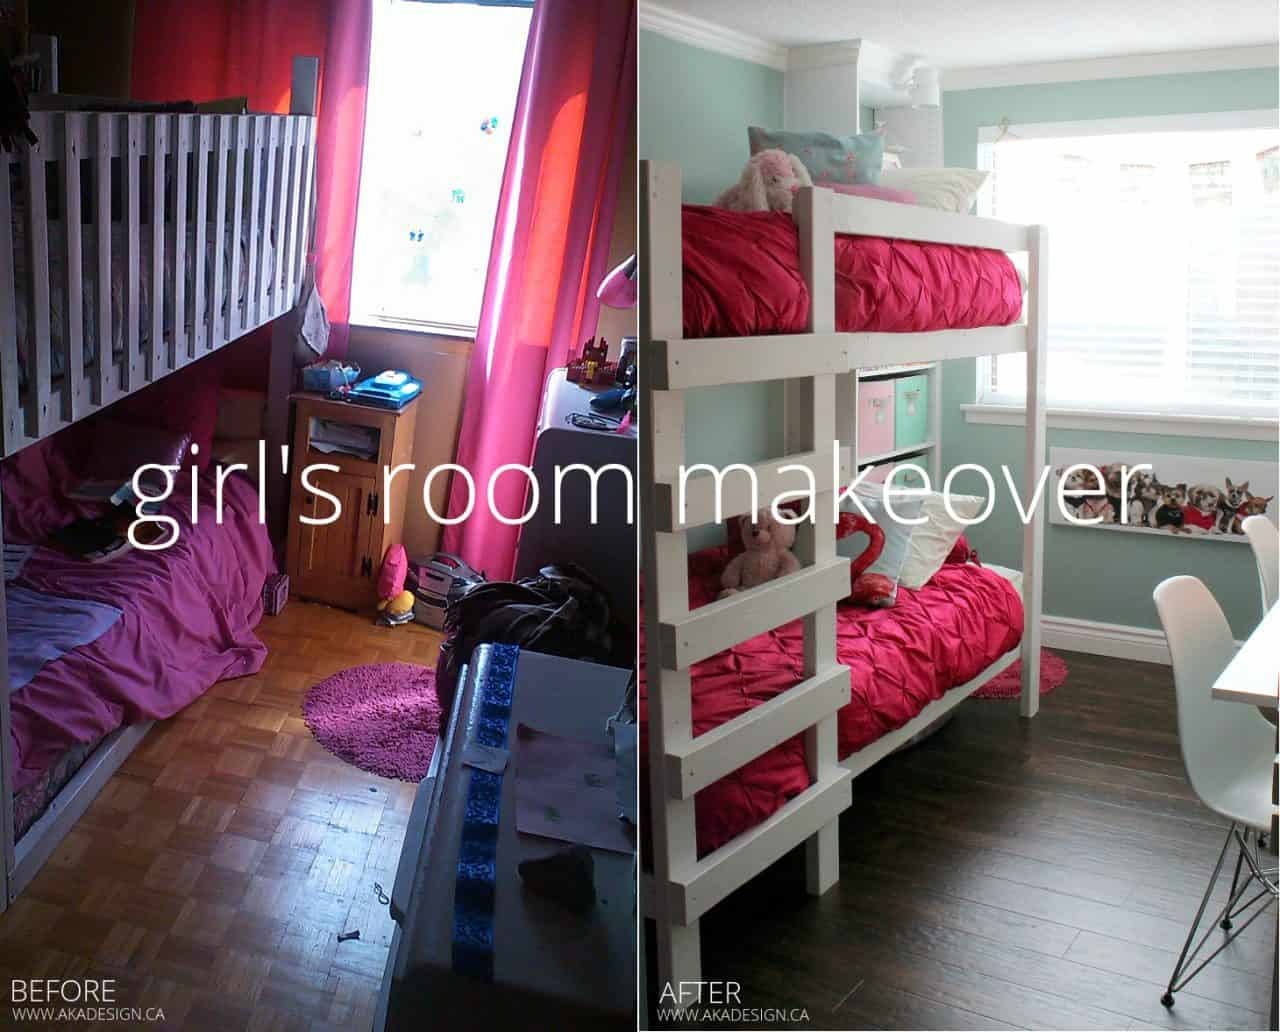 girl's room makeover before and after